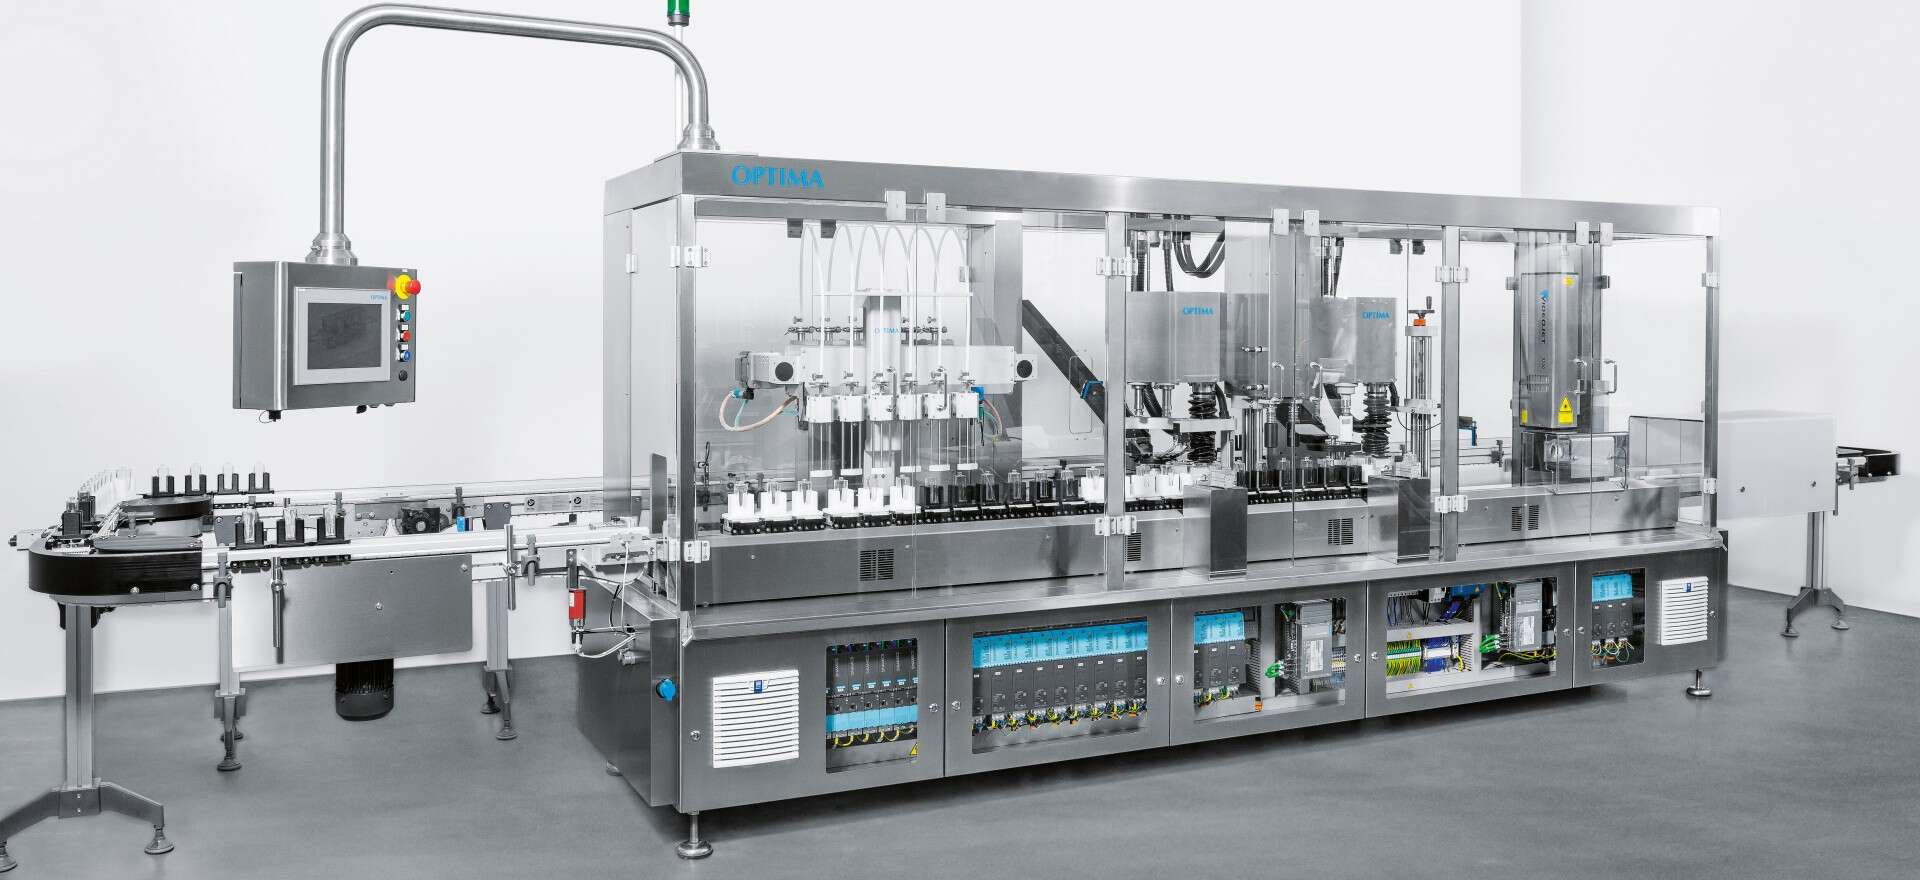 Joint project: Optima filling and packaging machine.